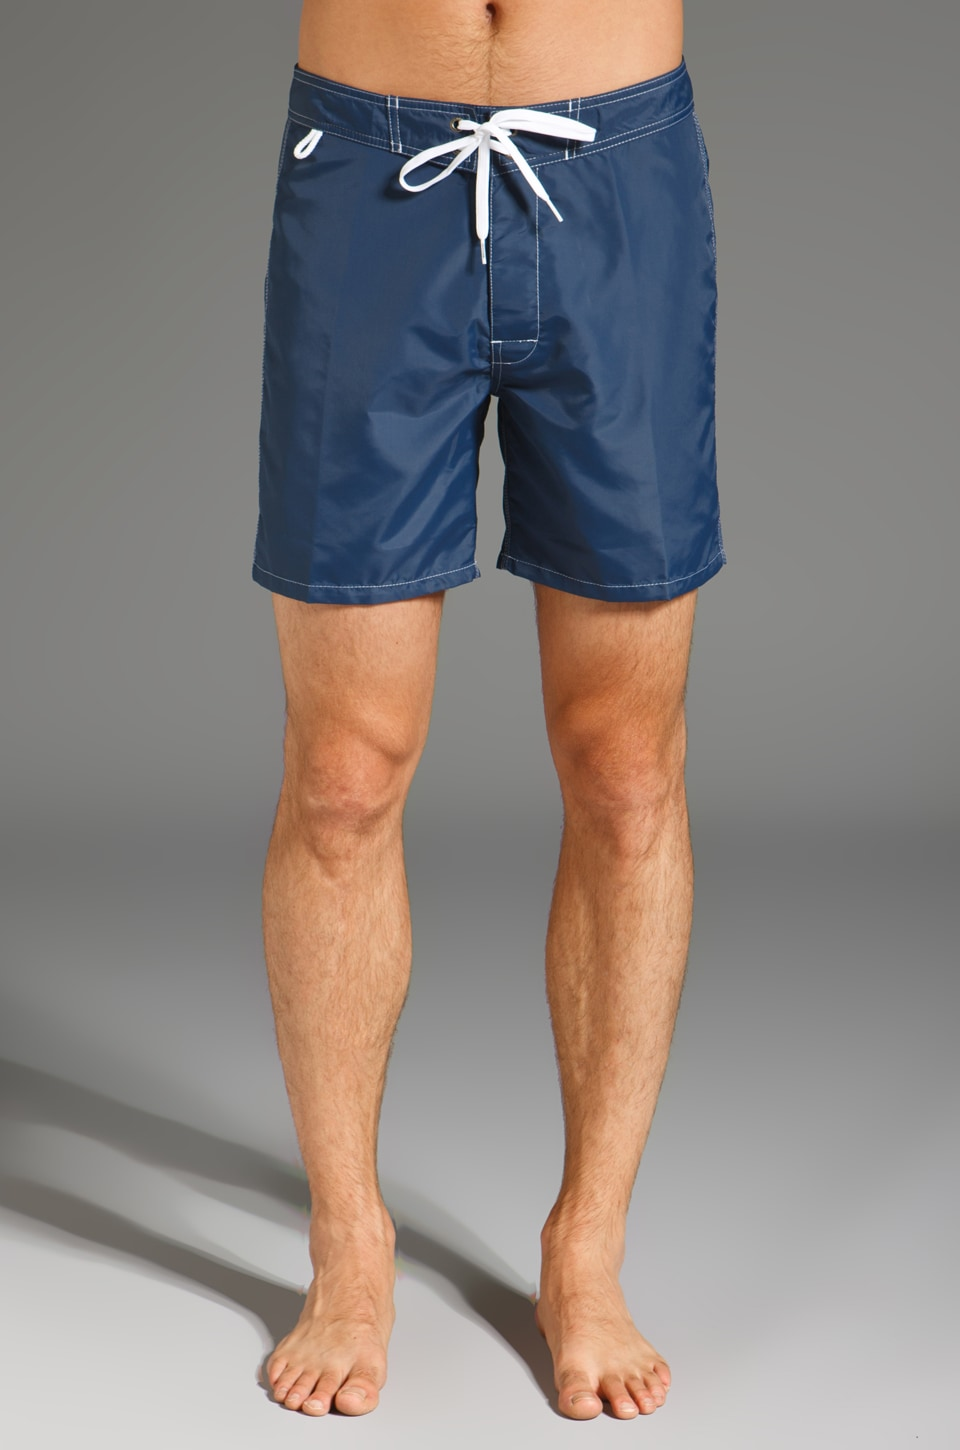 "Sundek 17"" Solid Boardshorts in Navy"